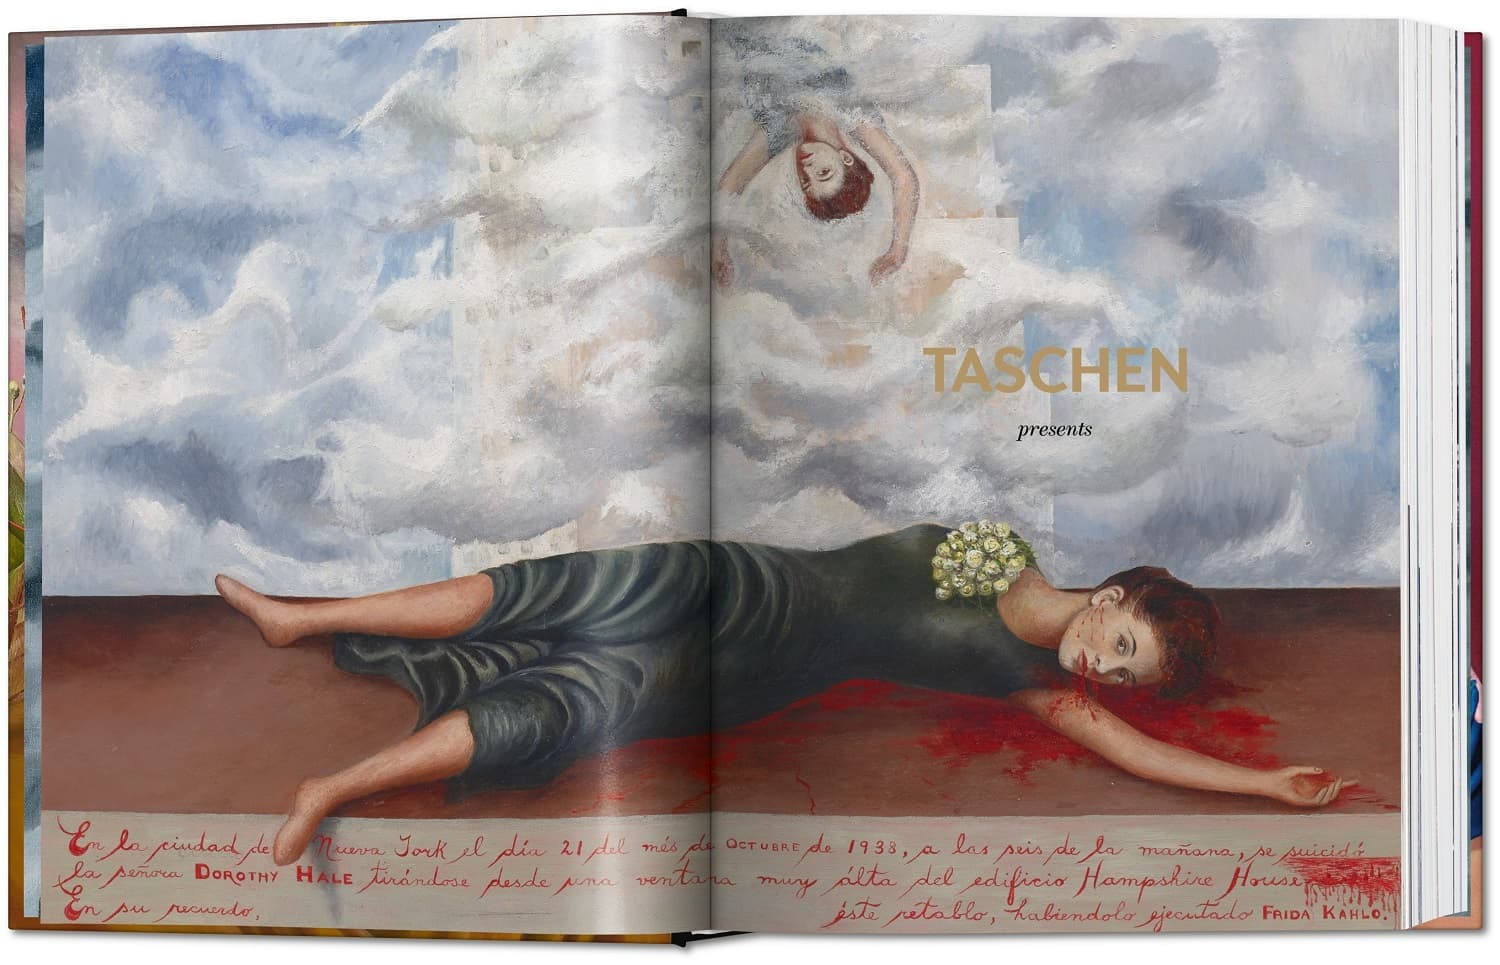 Frida Kahlo. The Complete Paintings Luis-Martín Lozano, Andrea Kettenmann, Marina Vázquez Ramos Hardcover, 11.4 x 15.6 in., 11.91 lb, 624 pages